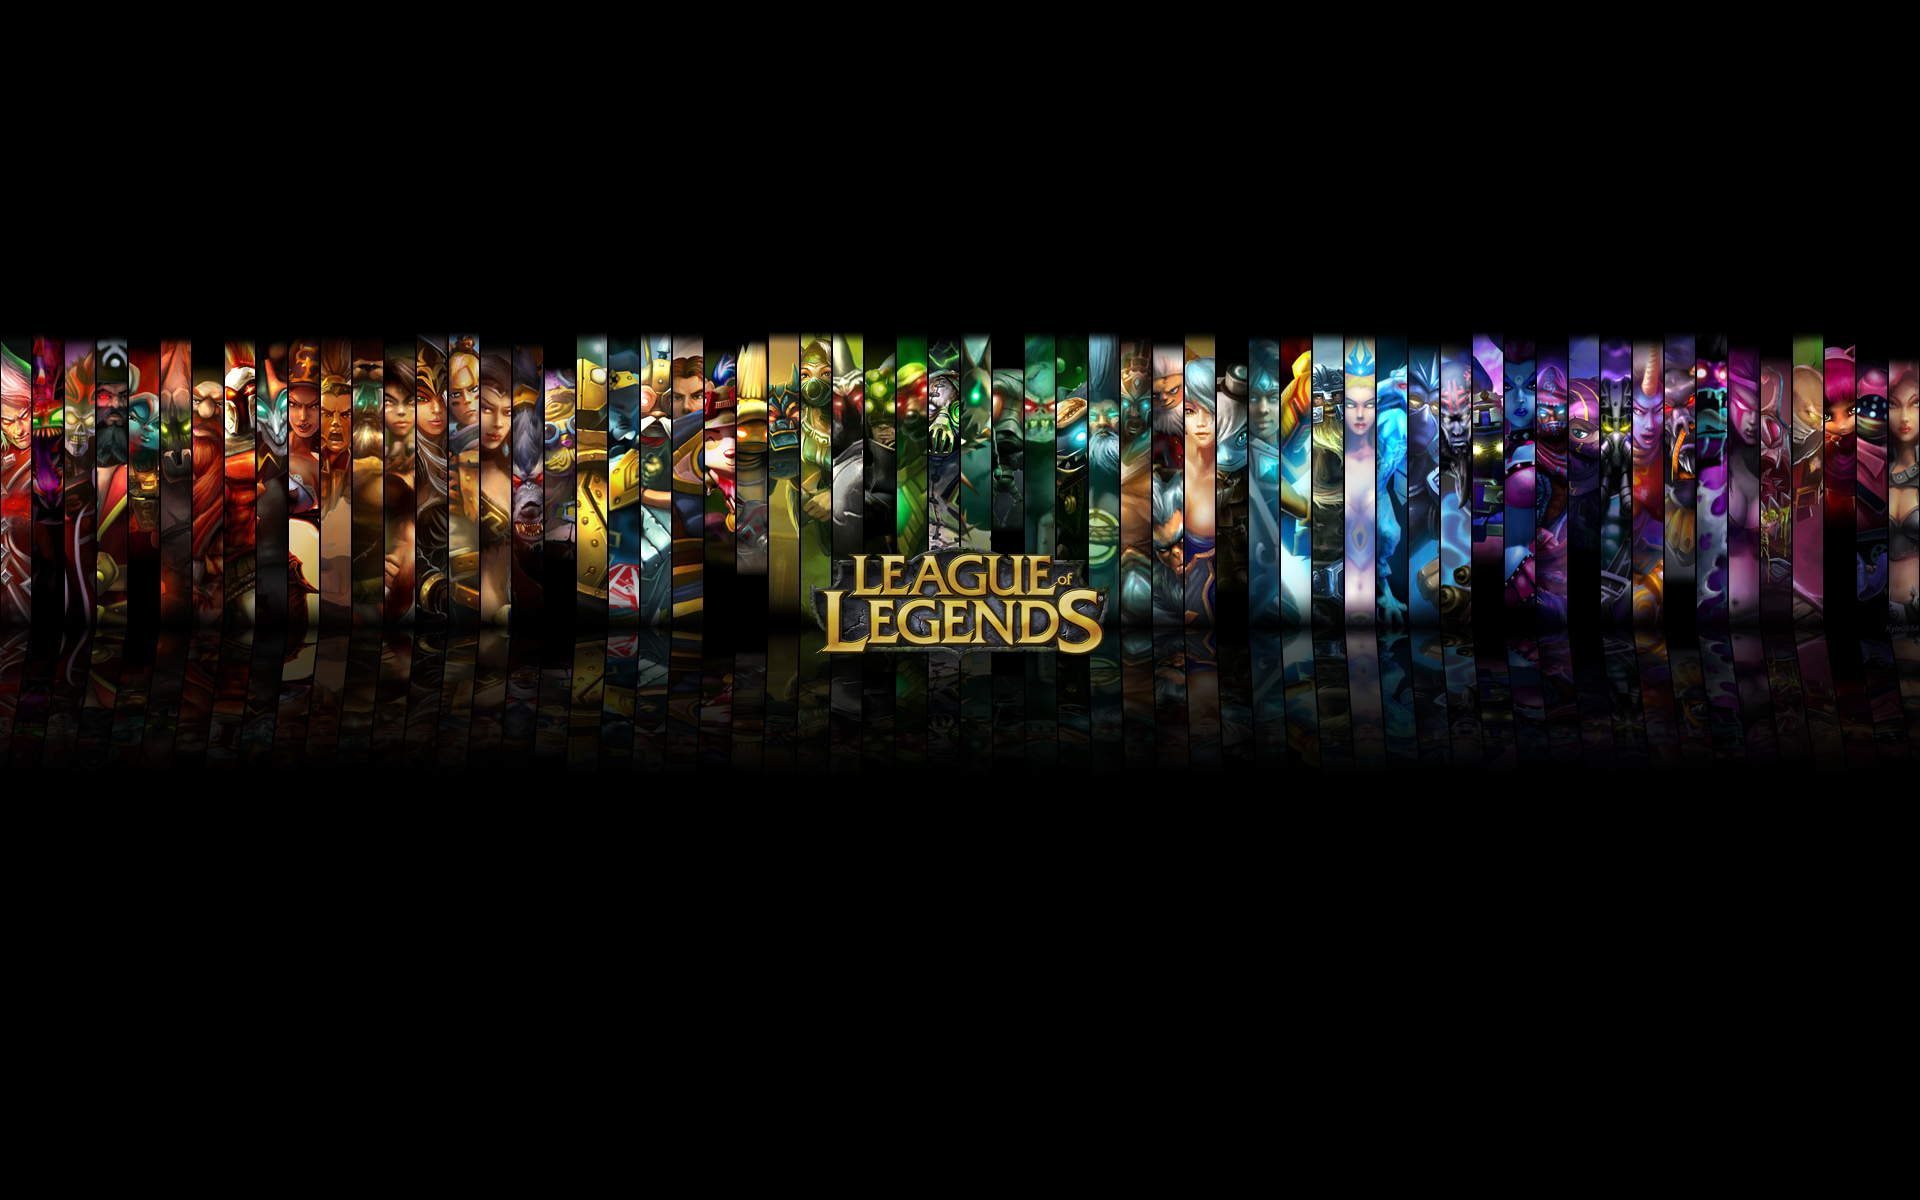 League Of Legends Wallpaper Hd 1920x1200